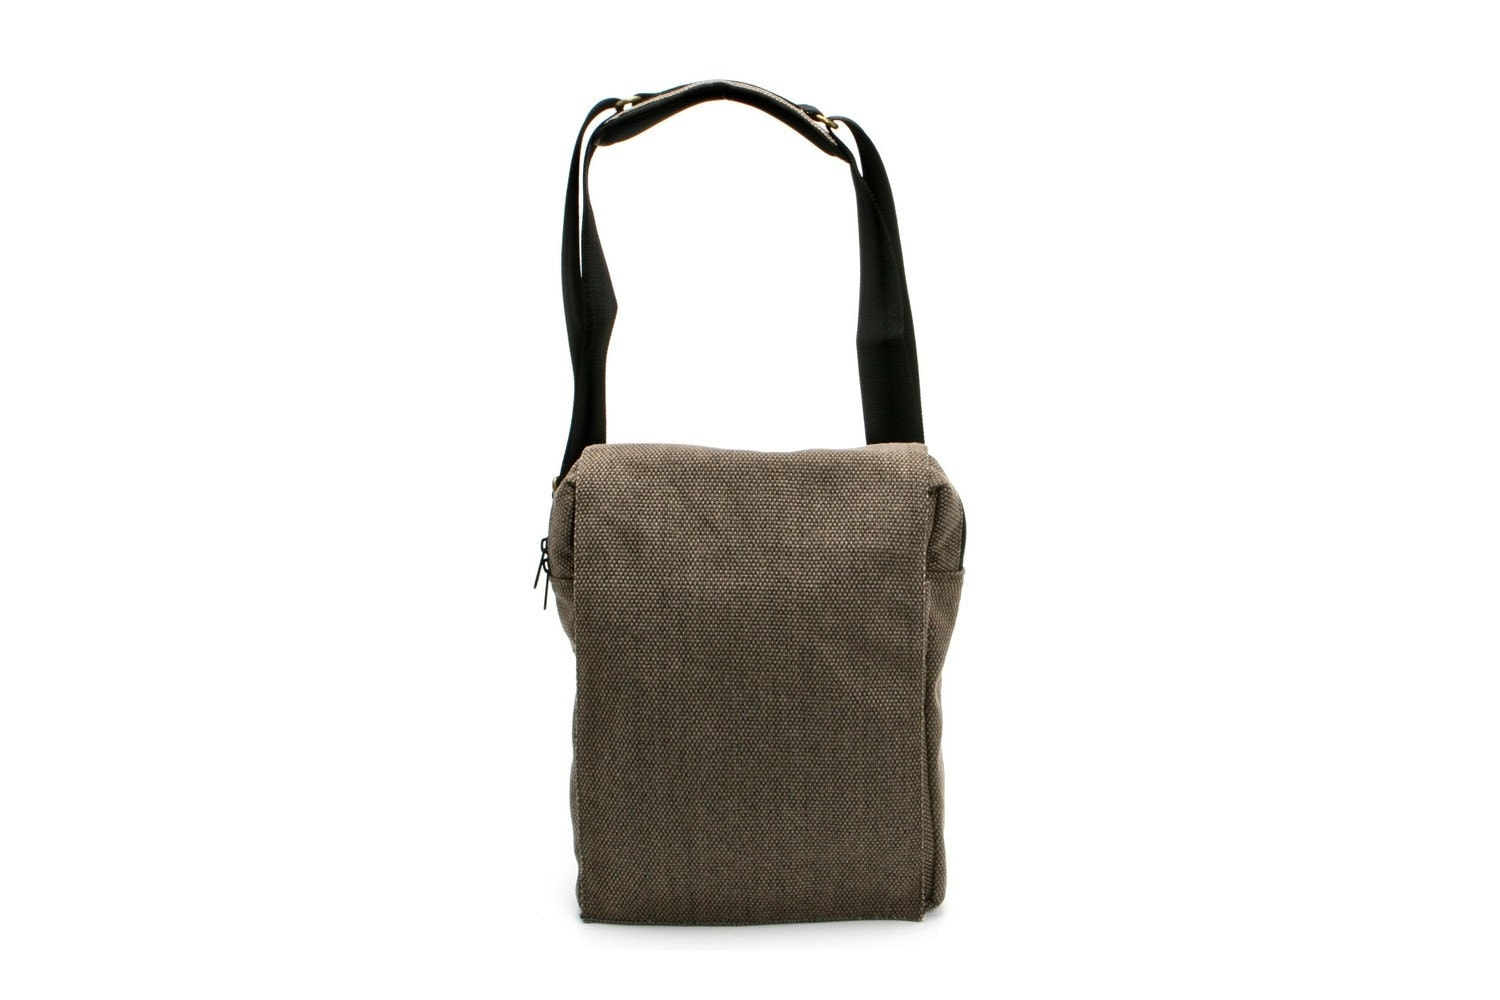 iNiko - Grey Canvas Padded iPad, Netbook, eReader Messenger Bag with Adjustable Strap